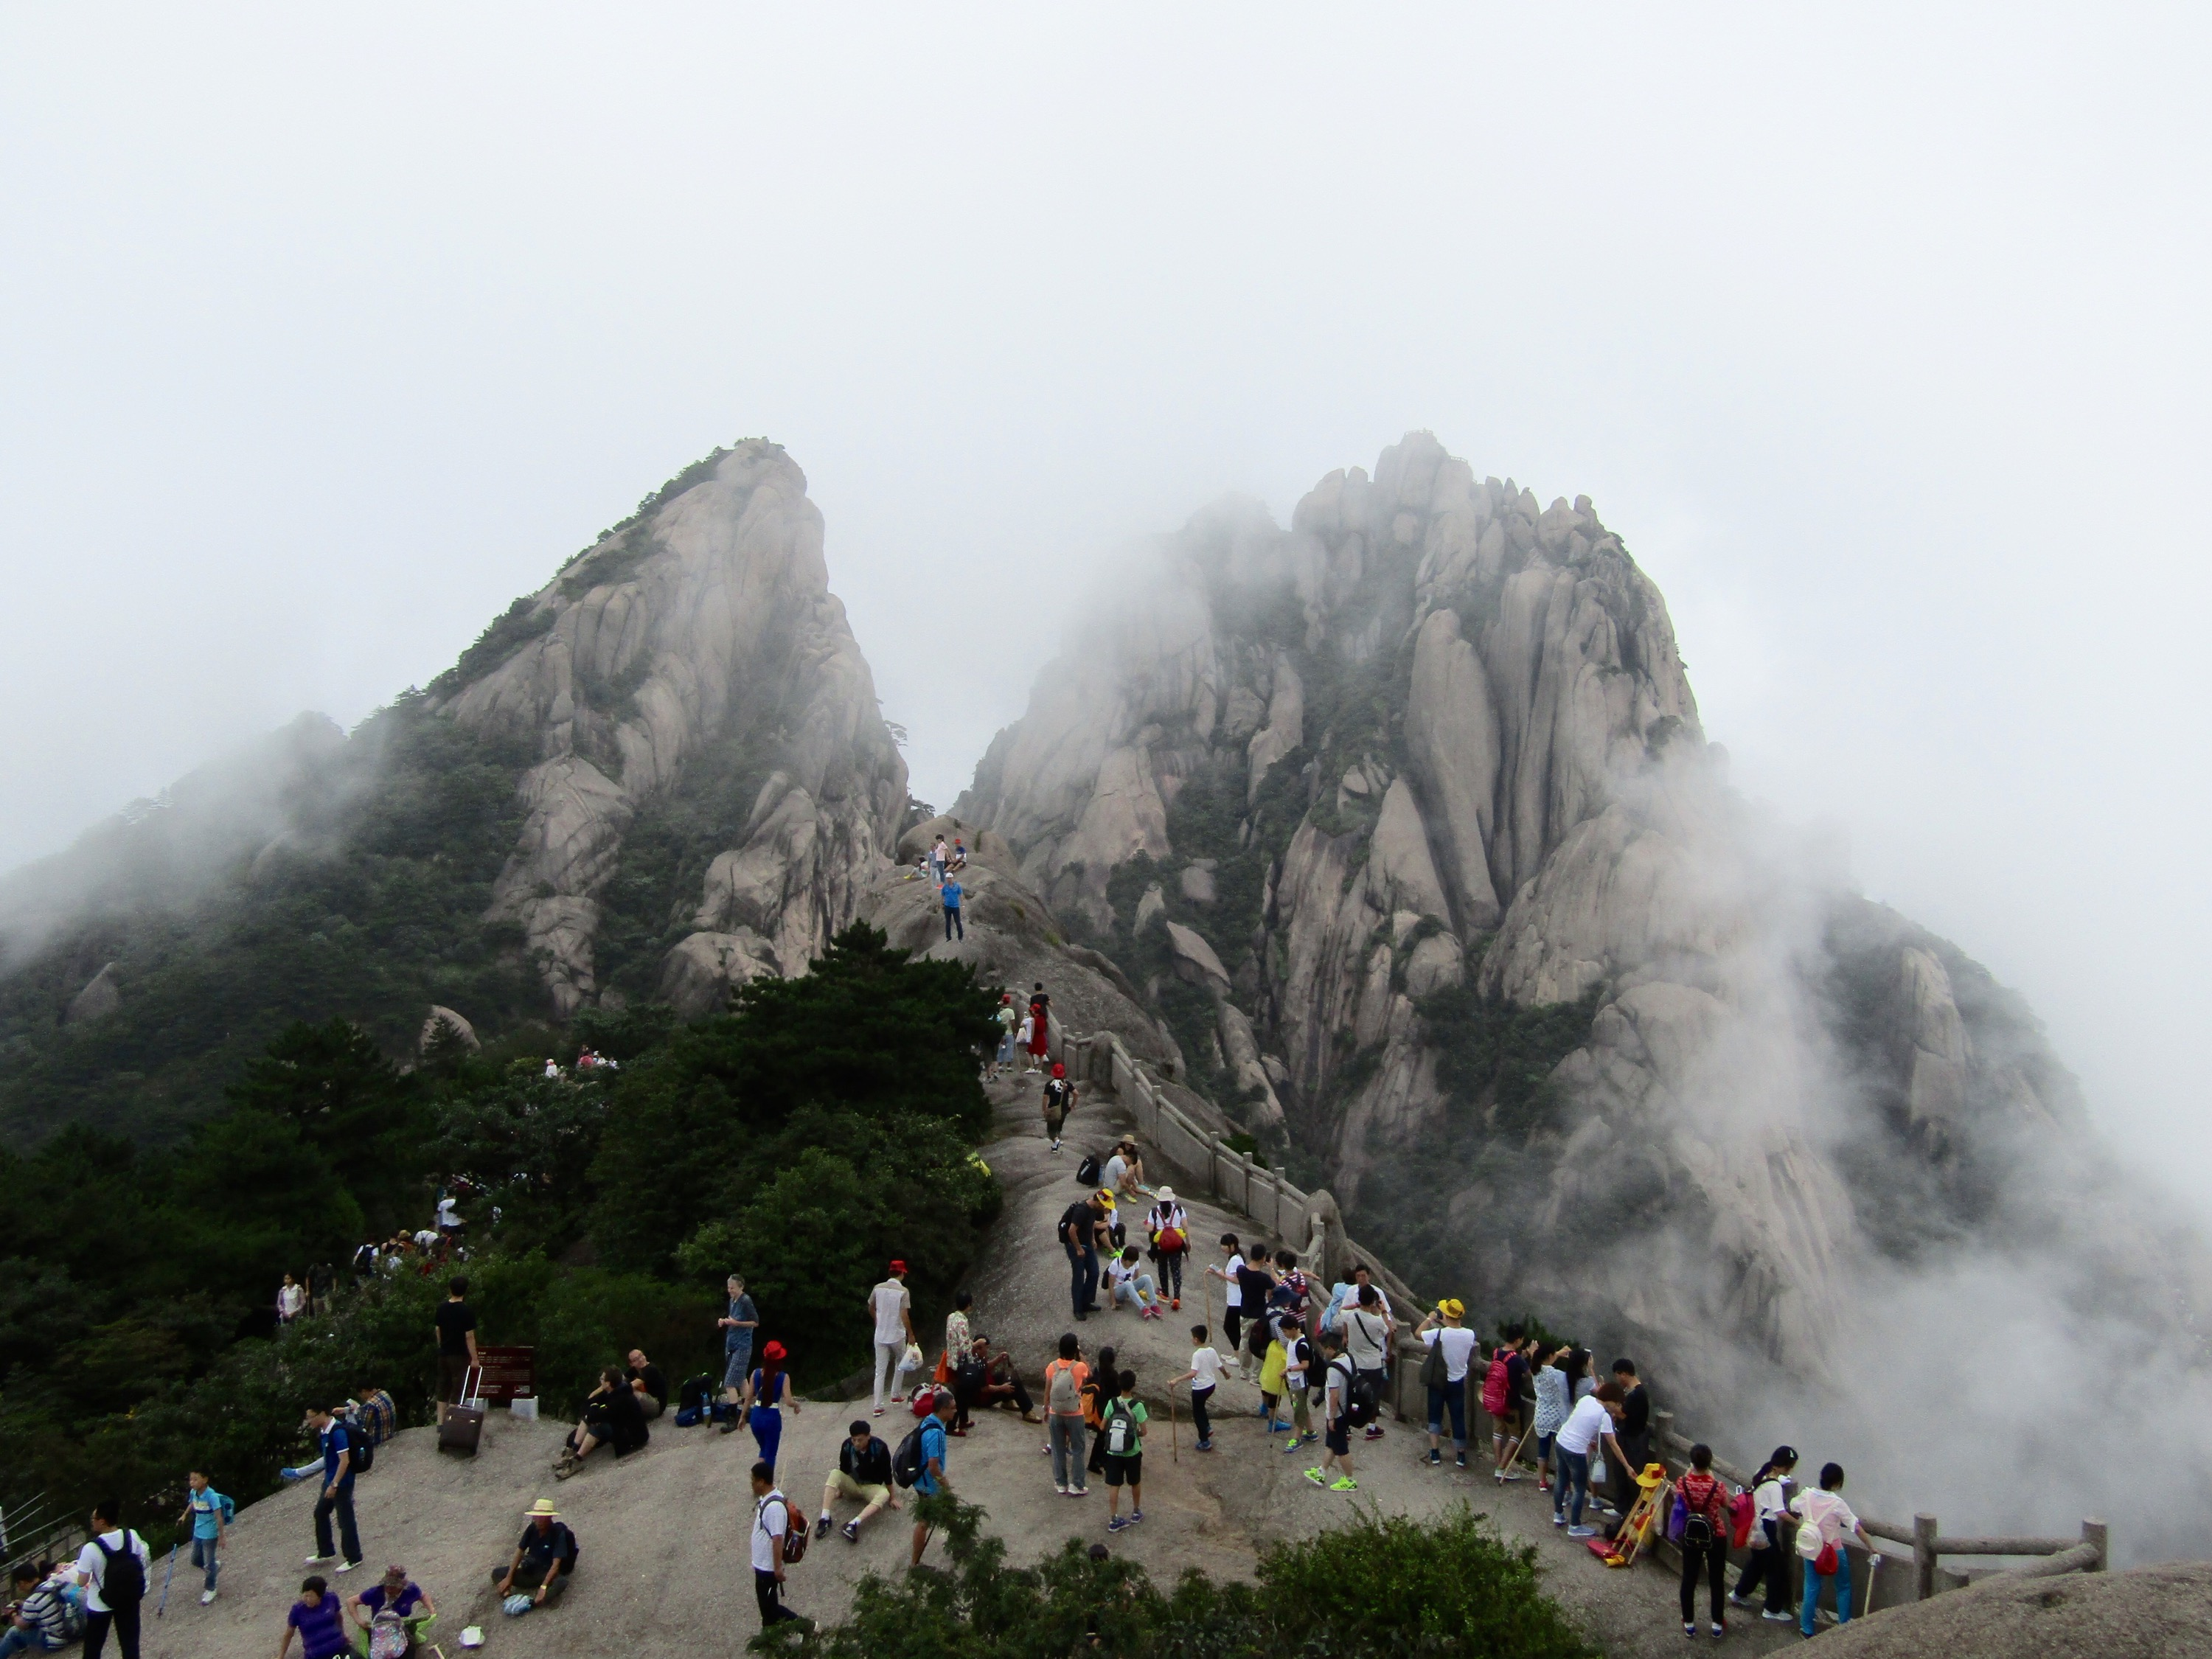 Our visit coincided with the end of the rainy season. The floating fog and mist is part of what makes Huangshan such a sight to behold, but the rainy weather made clear views of its twisted peaks a rarity.